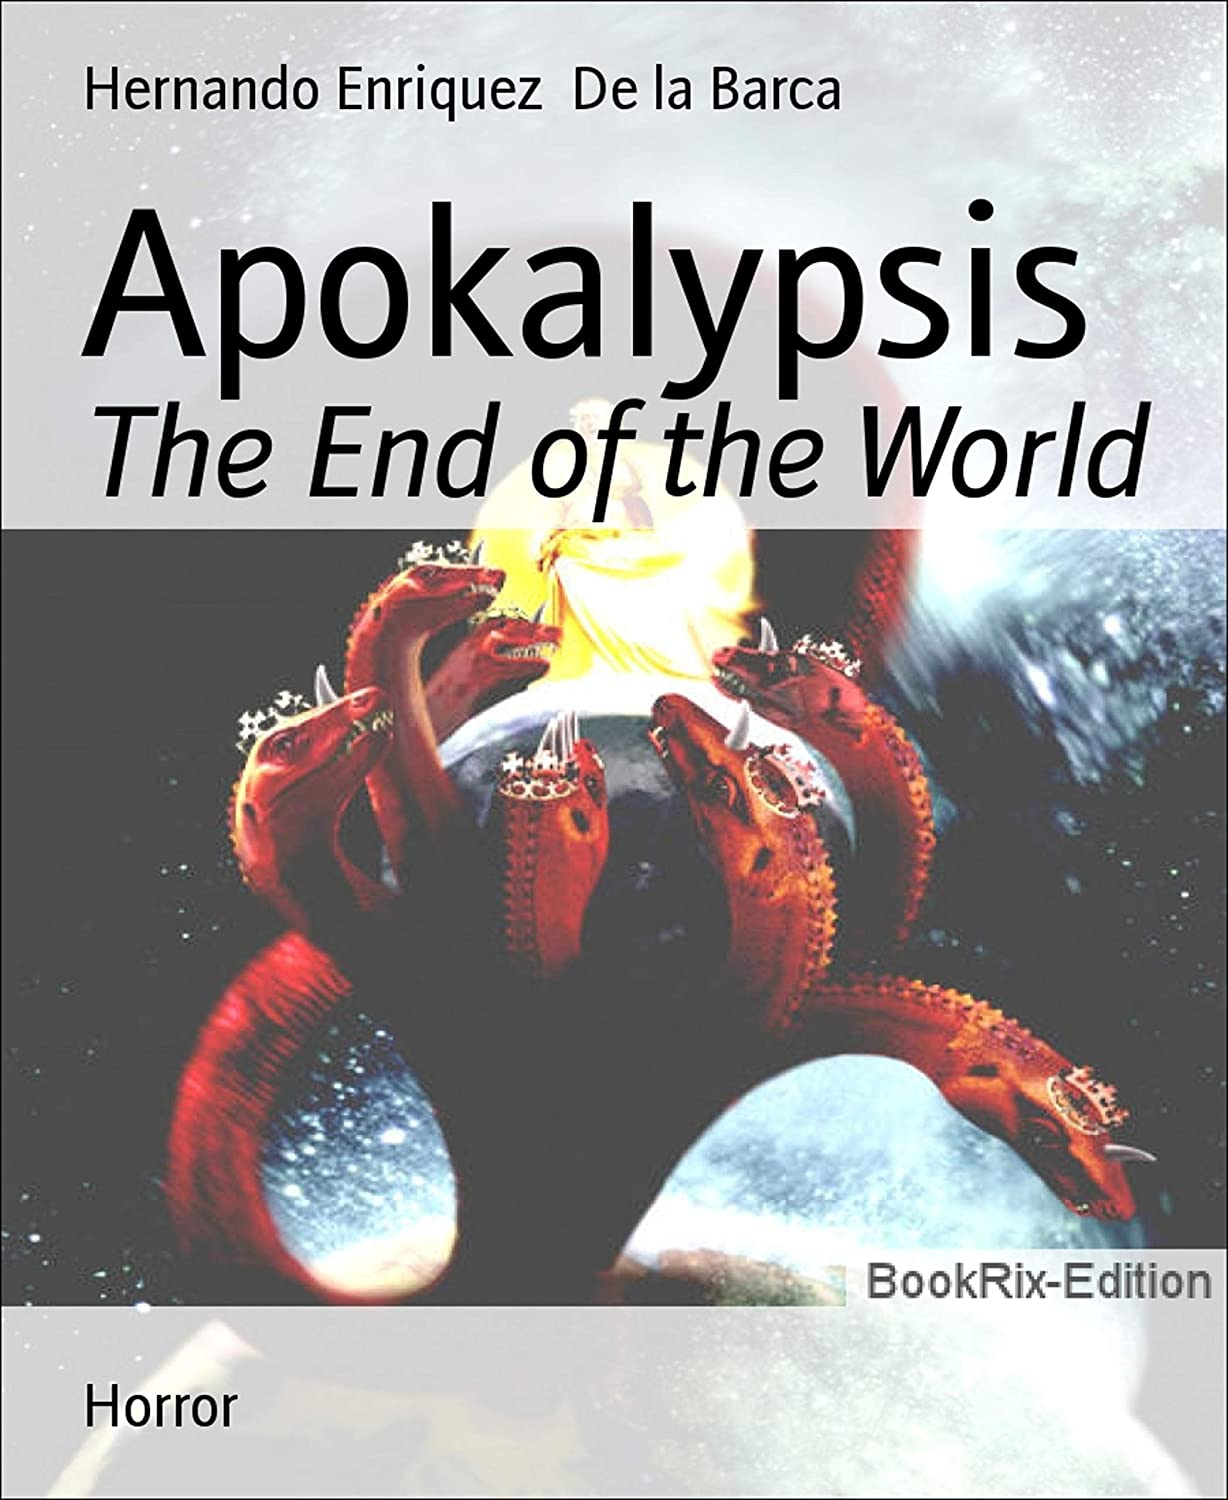 Apokalypsis: The End of the World